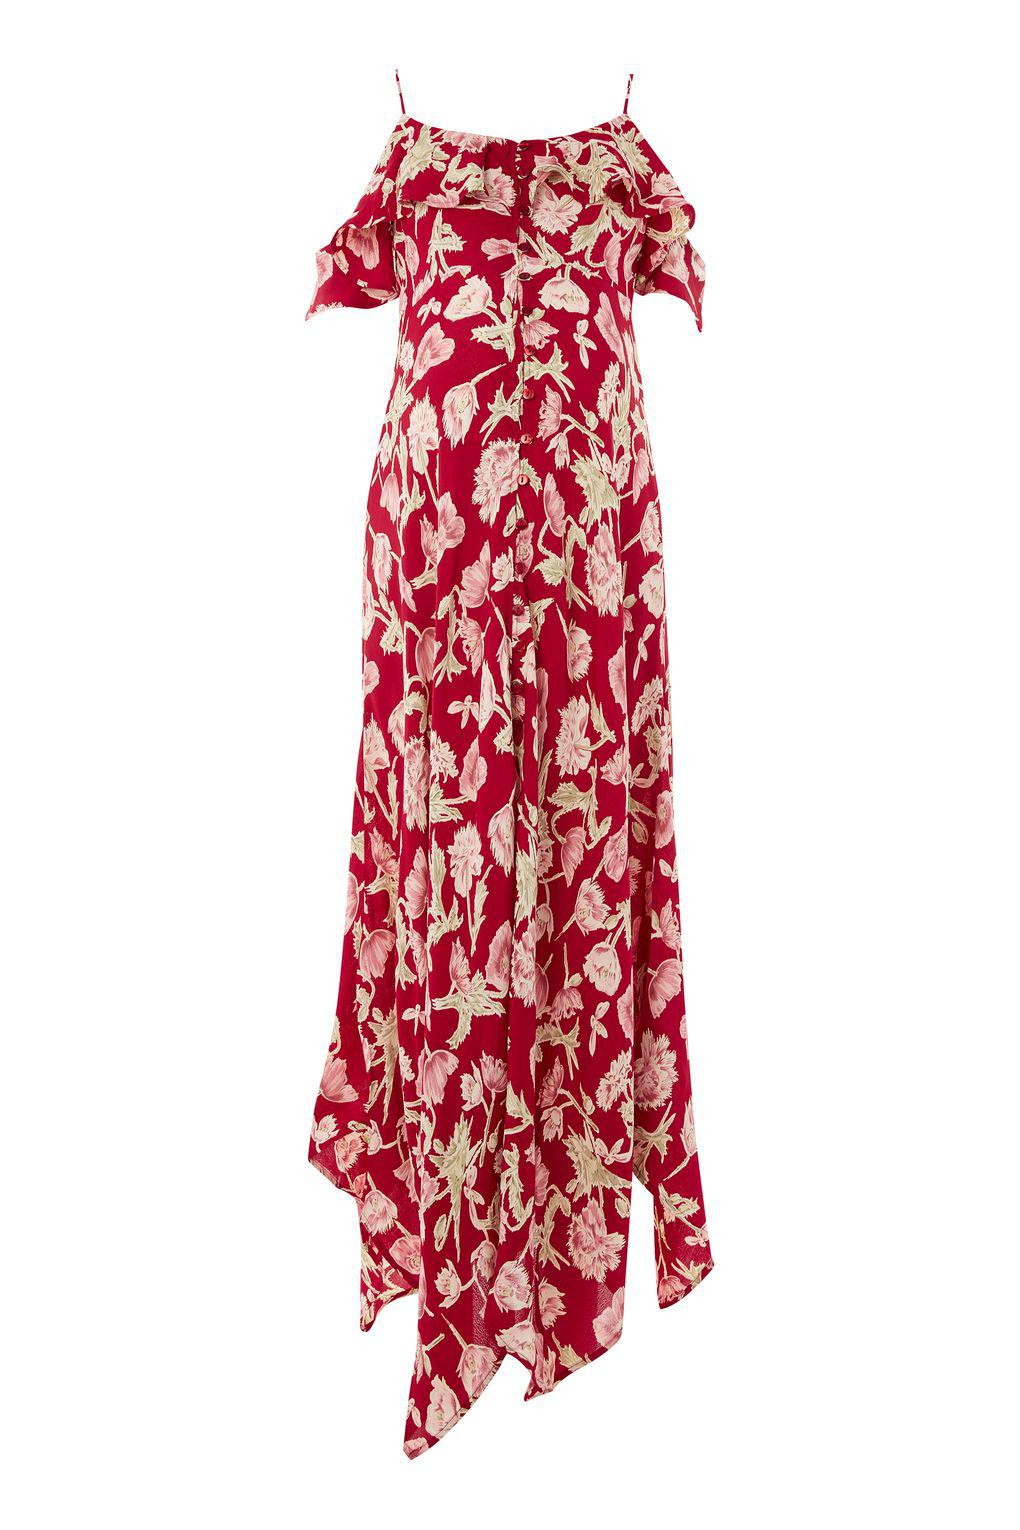 0983c56349e TOPSHOP Maternity Floral Handkerchief Maxi Dress in Red - Lyst